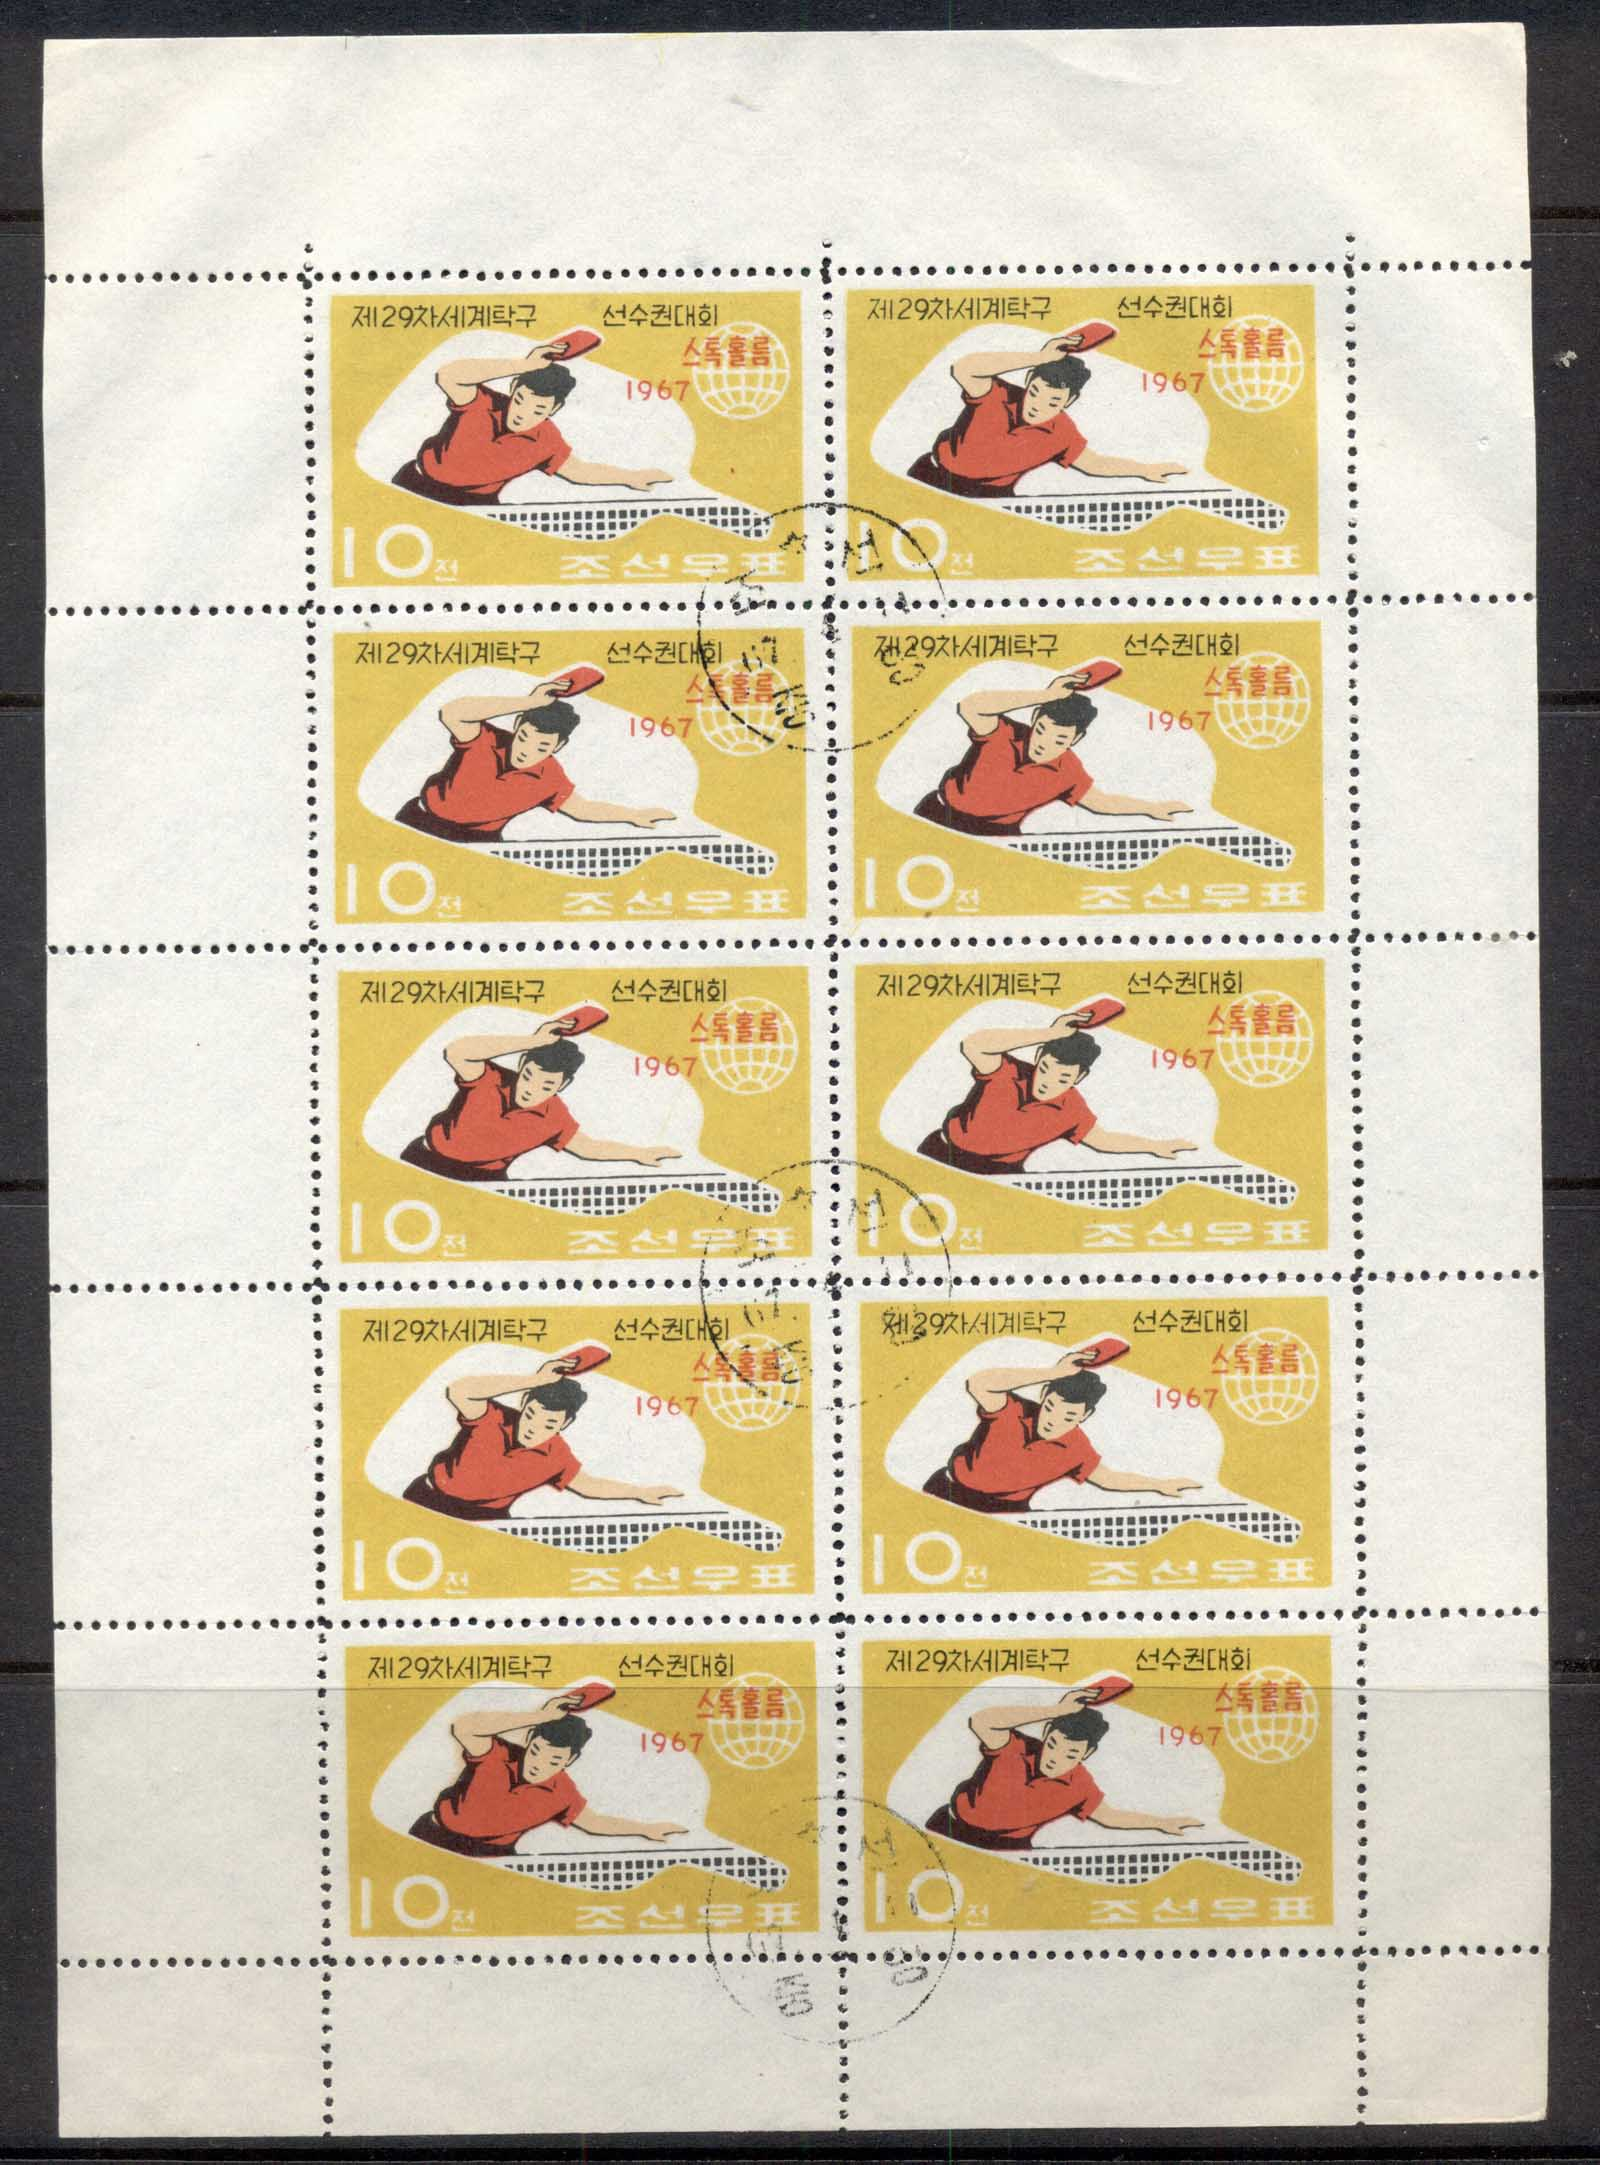 South East Asia 1967 Table Tennis 10ch sheetlet CTO